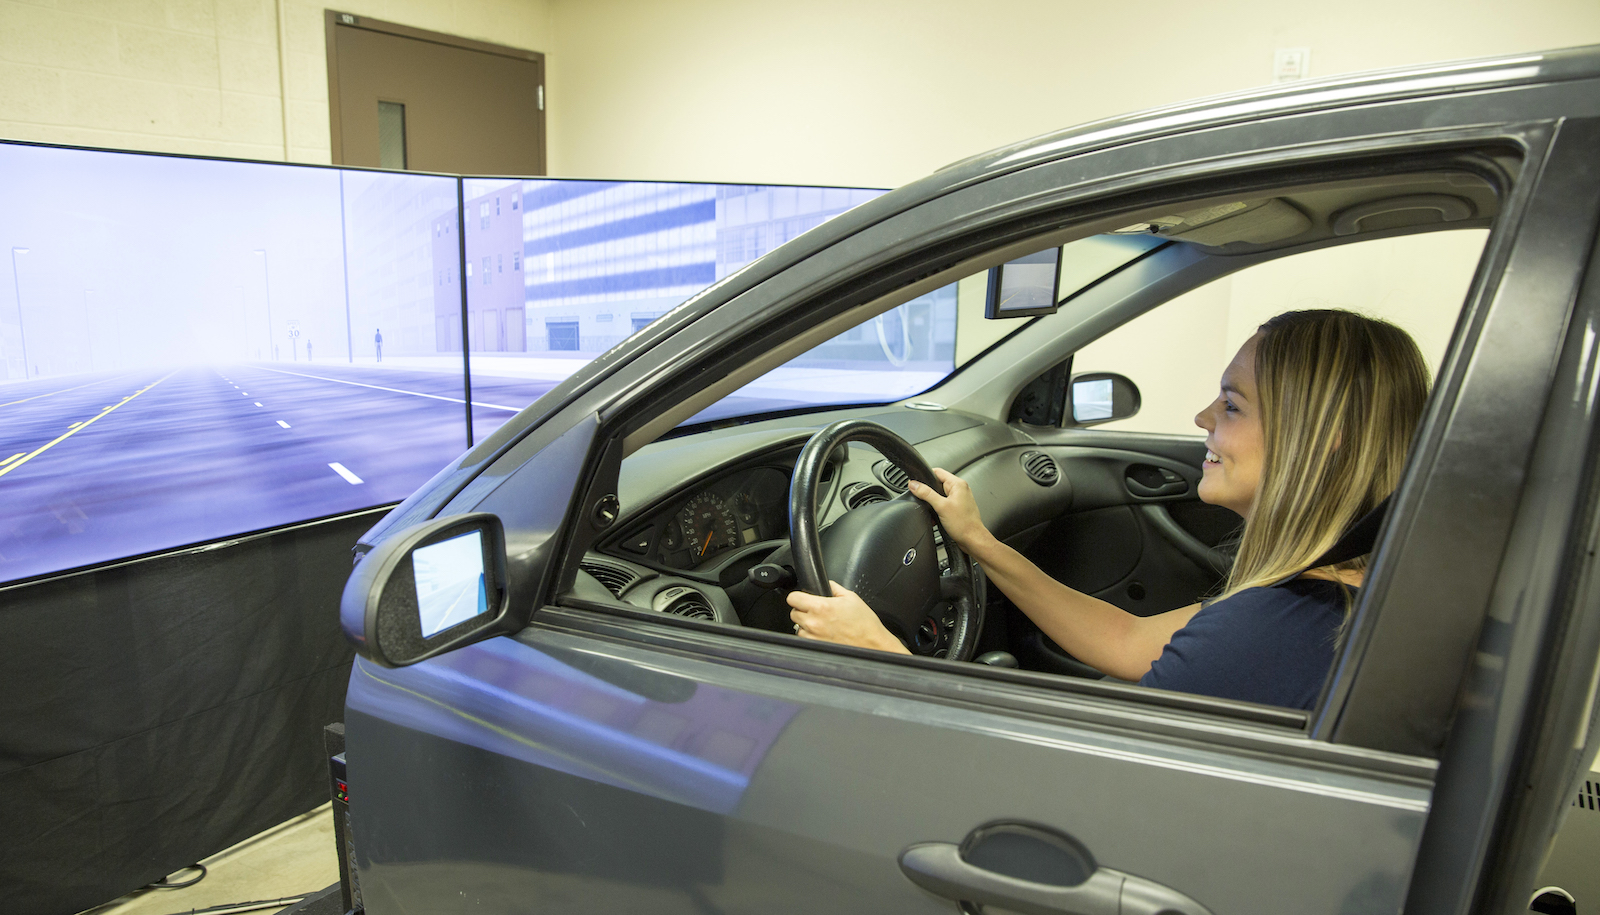 image of woman in a car as part of a driving simulator